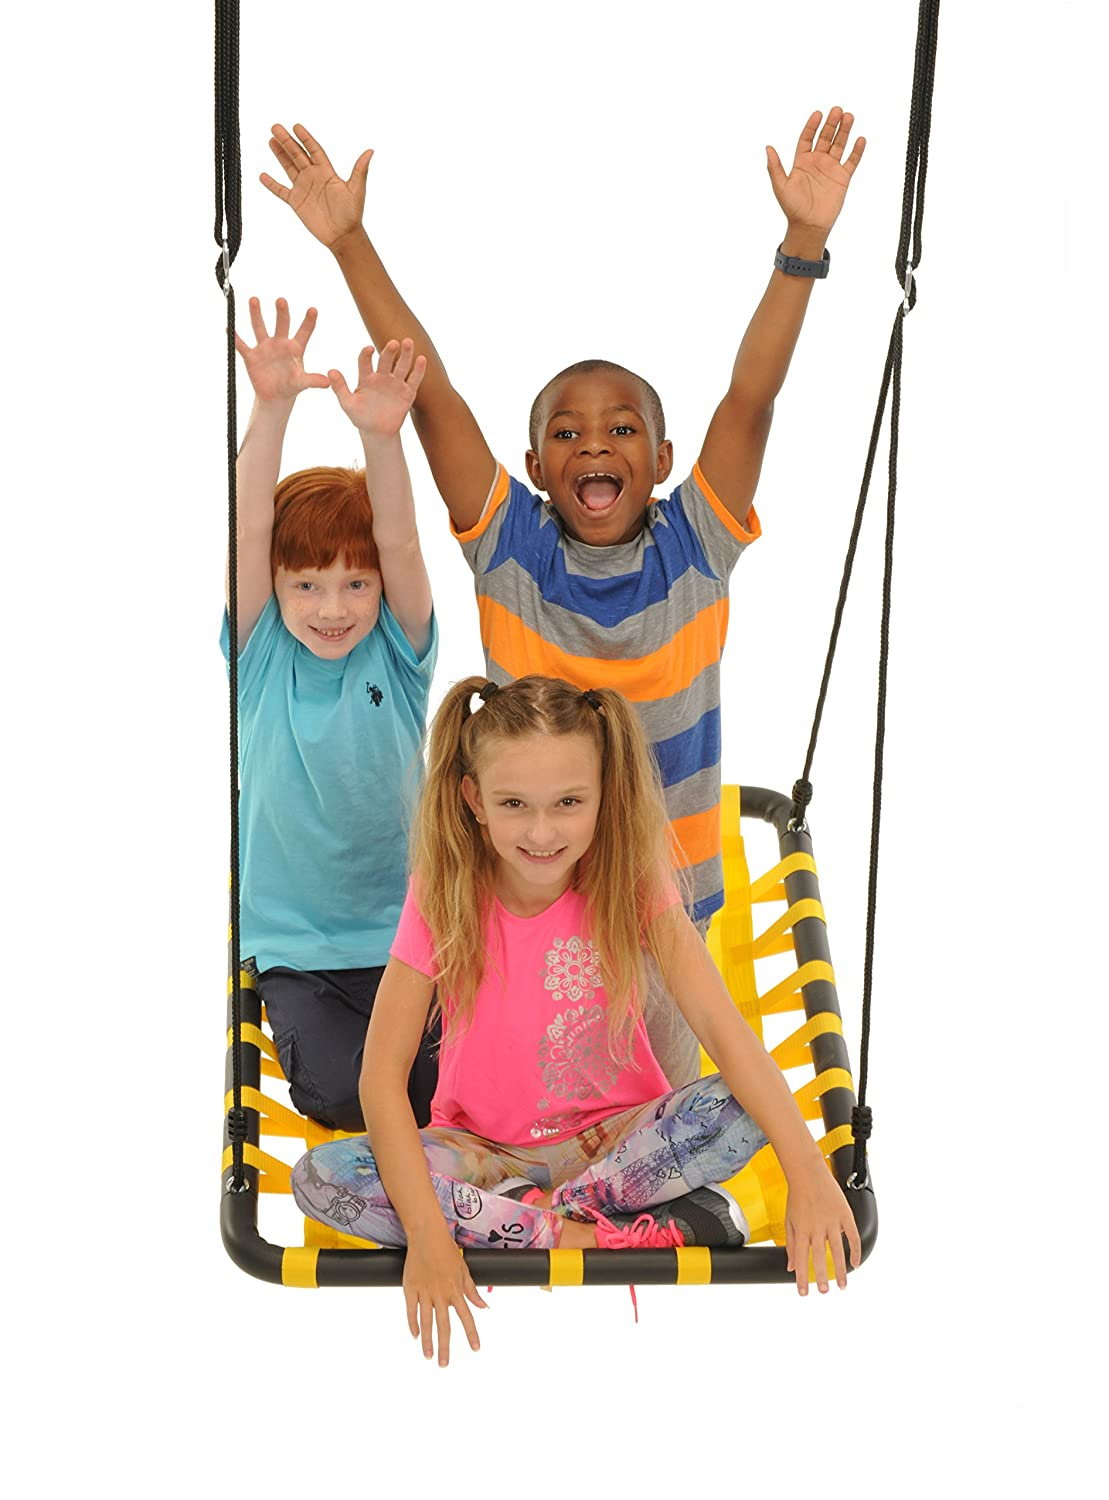 Giant Mat Platform Swing - Room for Multiple Children